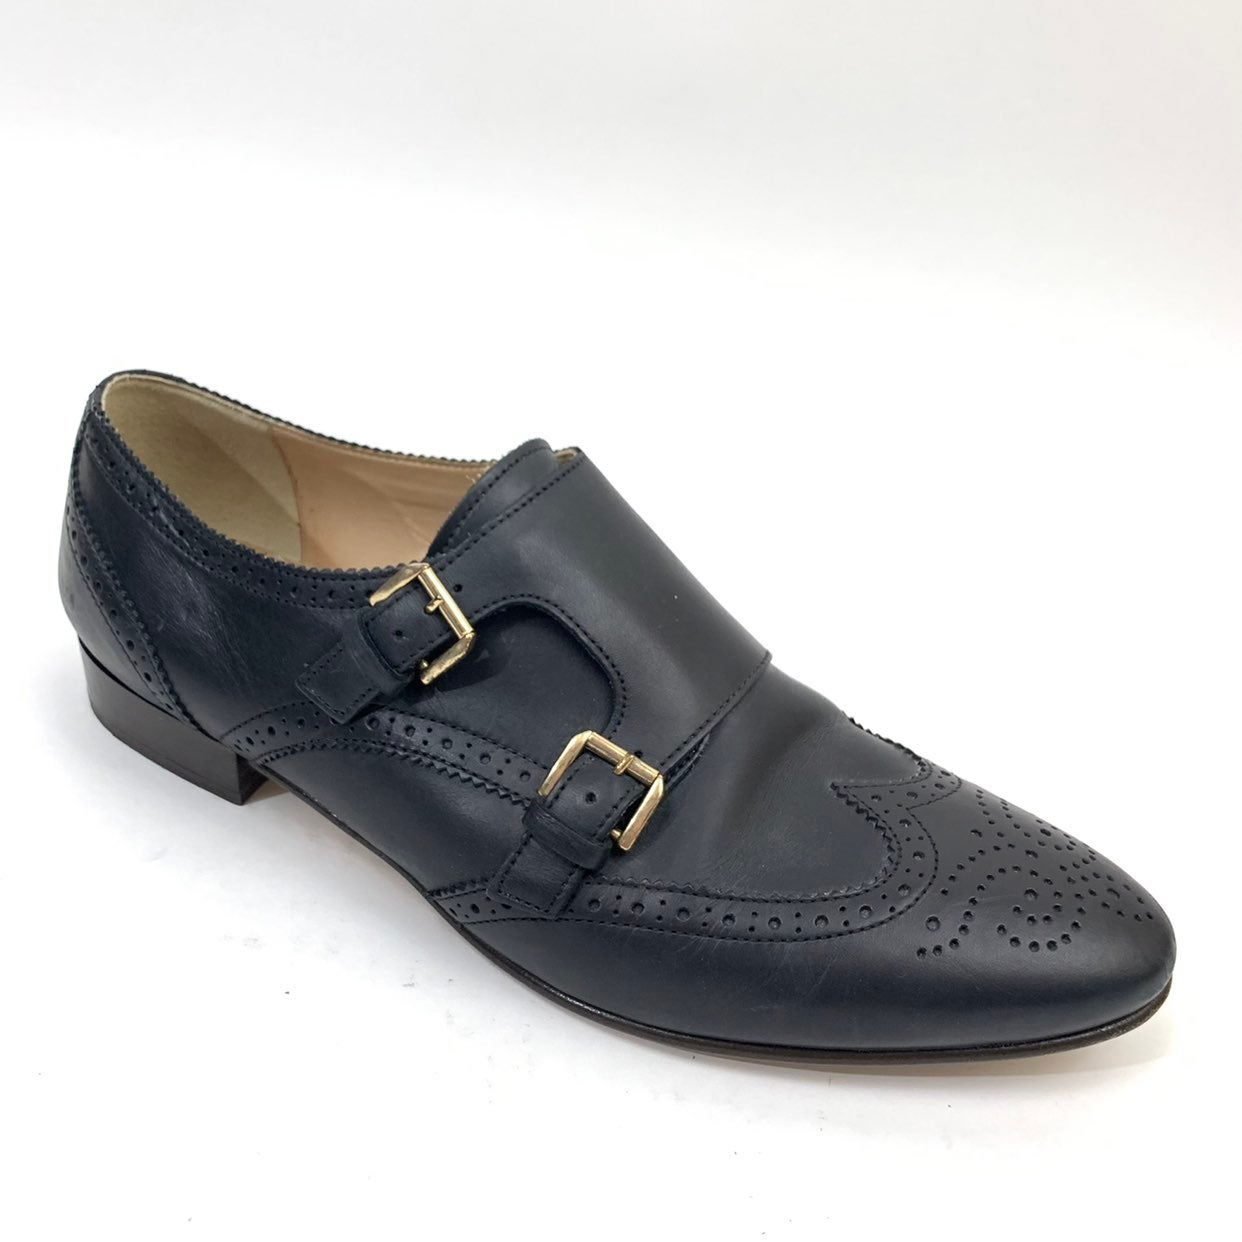 J Crew Monk Strap Perforated Loafer 10